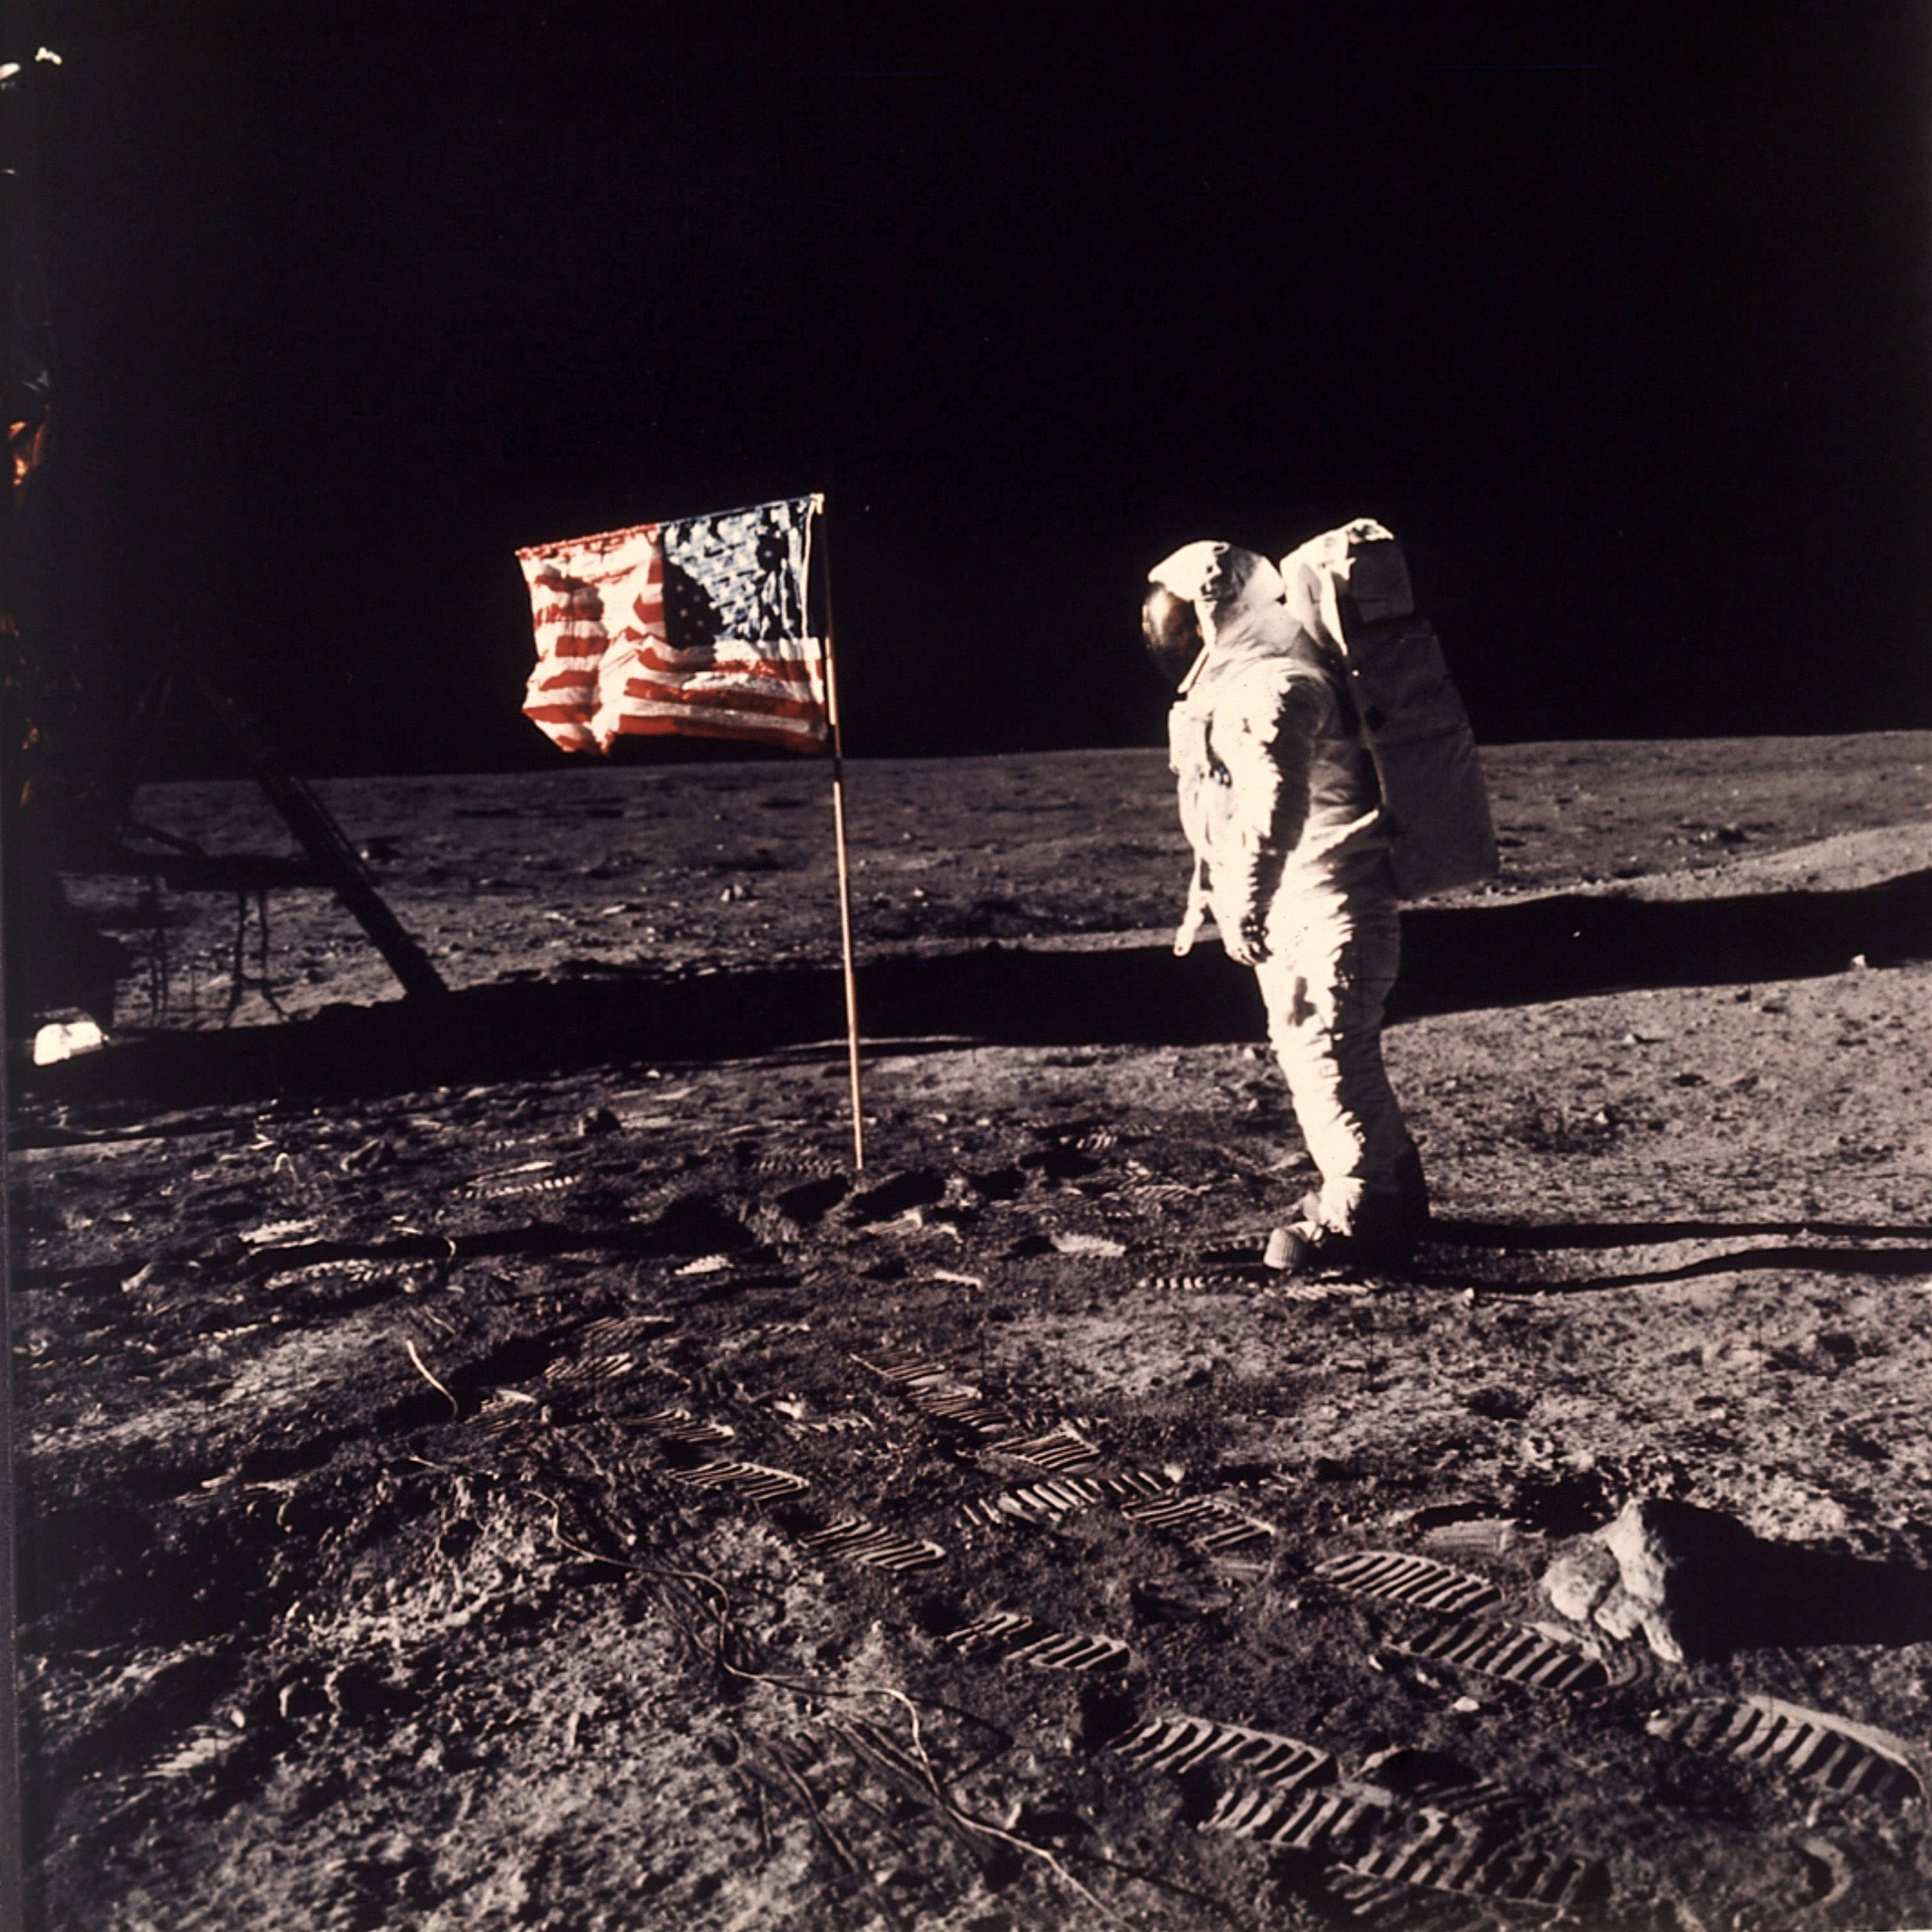 "ASSOCIATED PRESS/NASA Astronaut Edwin E. ""Buzz"" Aldrin Jr. stands beside a U.S. flag deployed on the moon during the Apollo 11 mission on July 20, 1969. Aldrin and fellow astronaut Neil Armstrong were the first men to walk on the lunar surface."